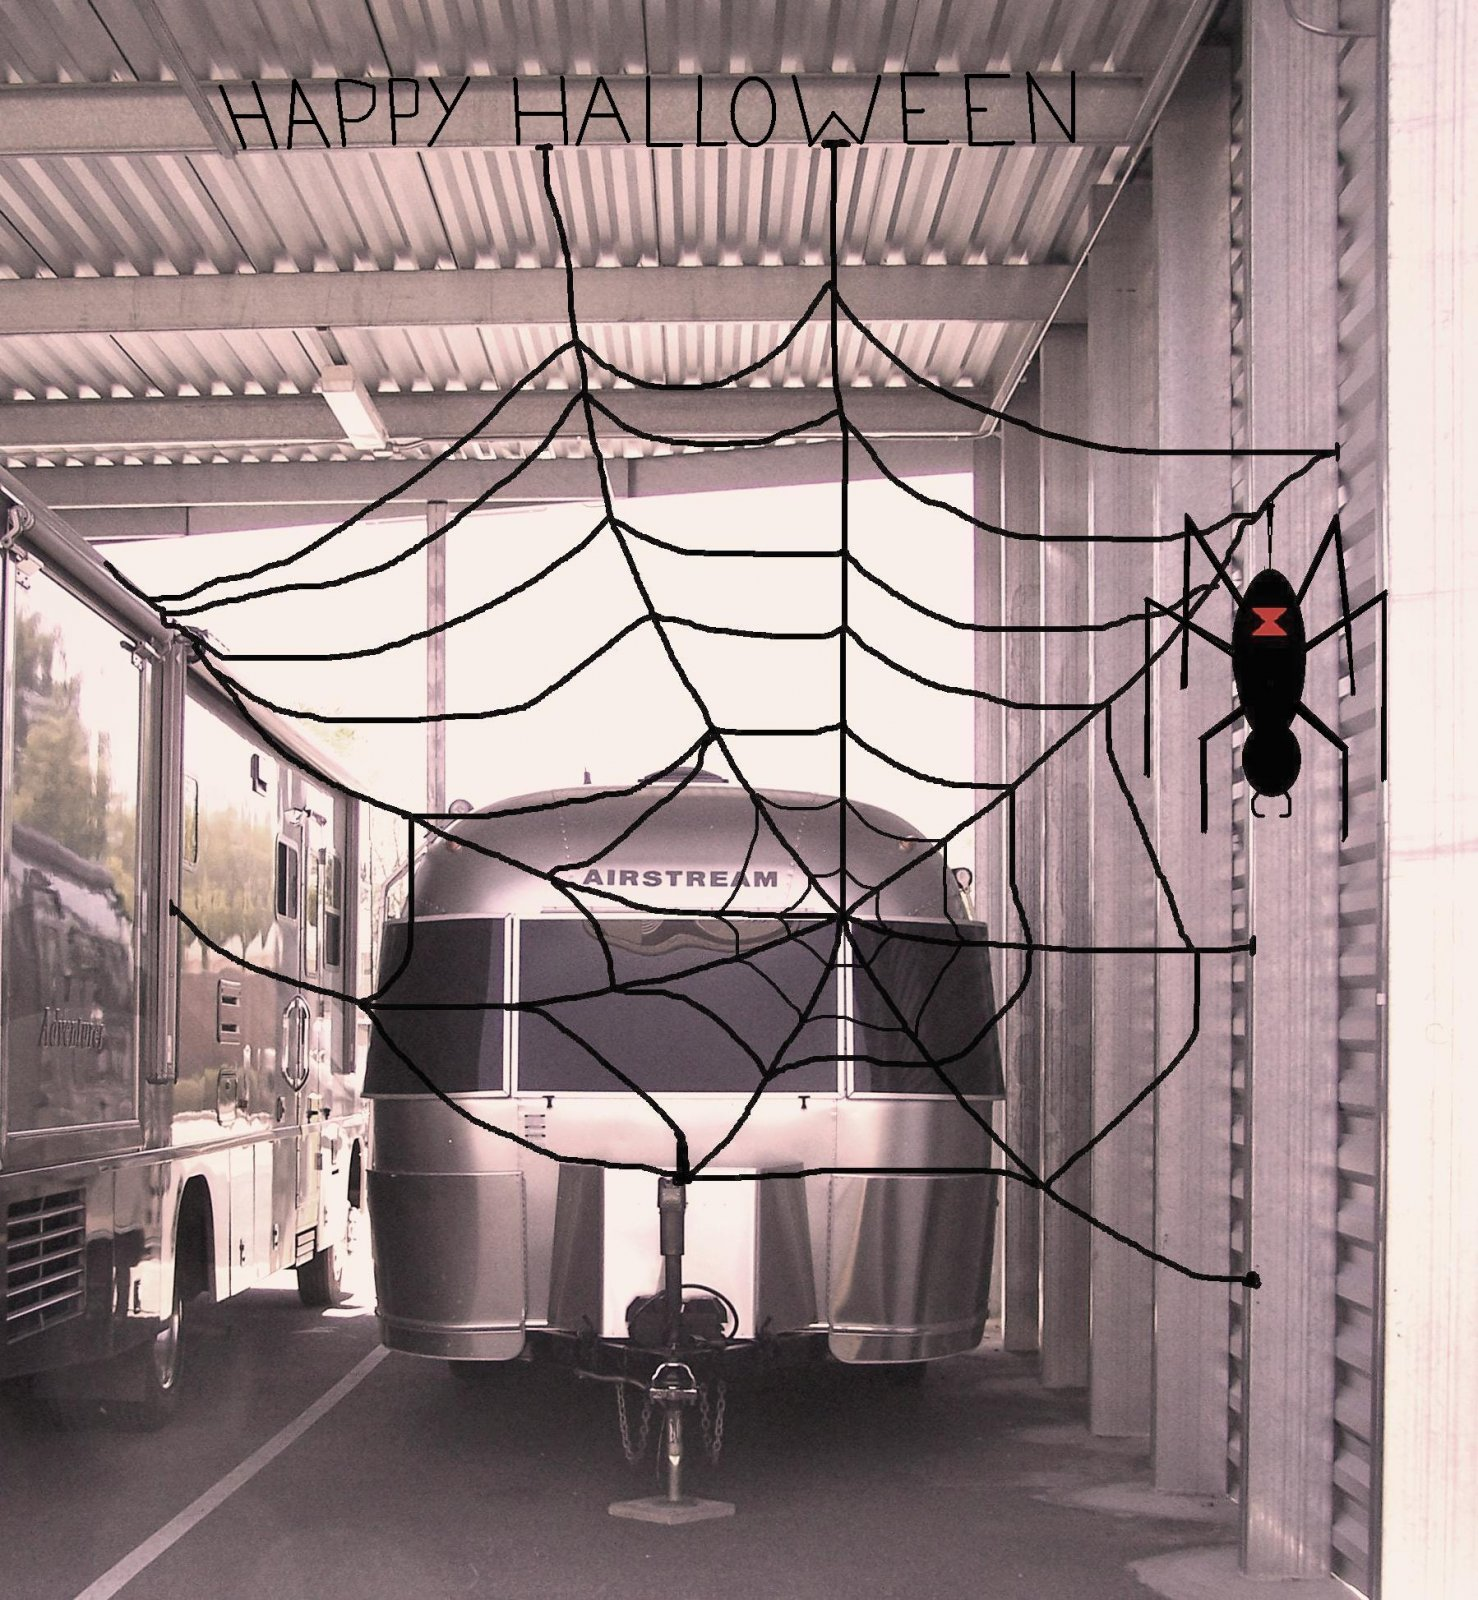 Click image for larger version  Name:spidey halloween.jpg Views:72 Size:438.4 KB ID:113539